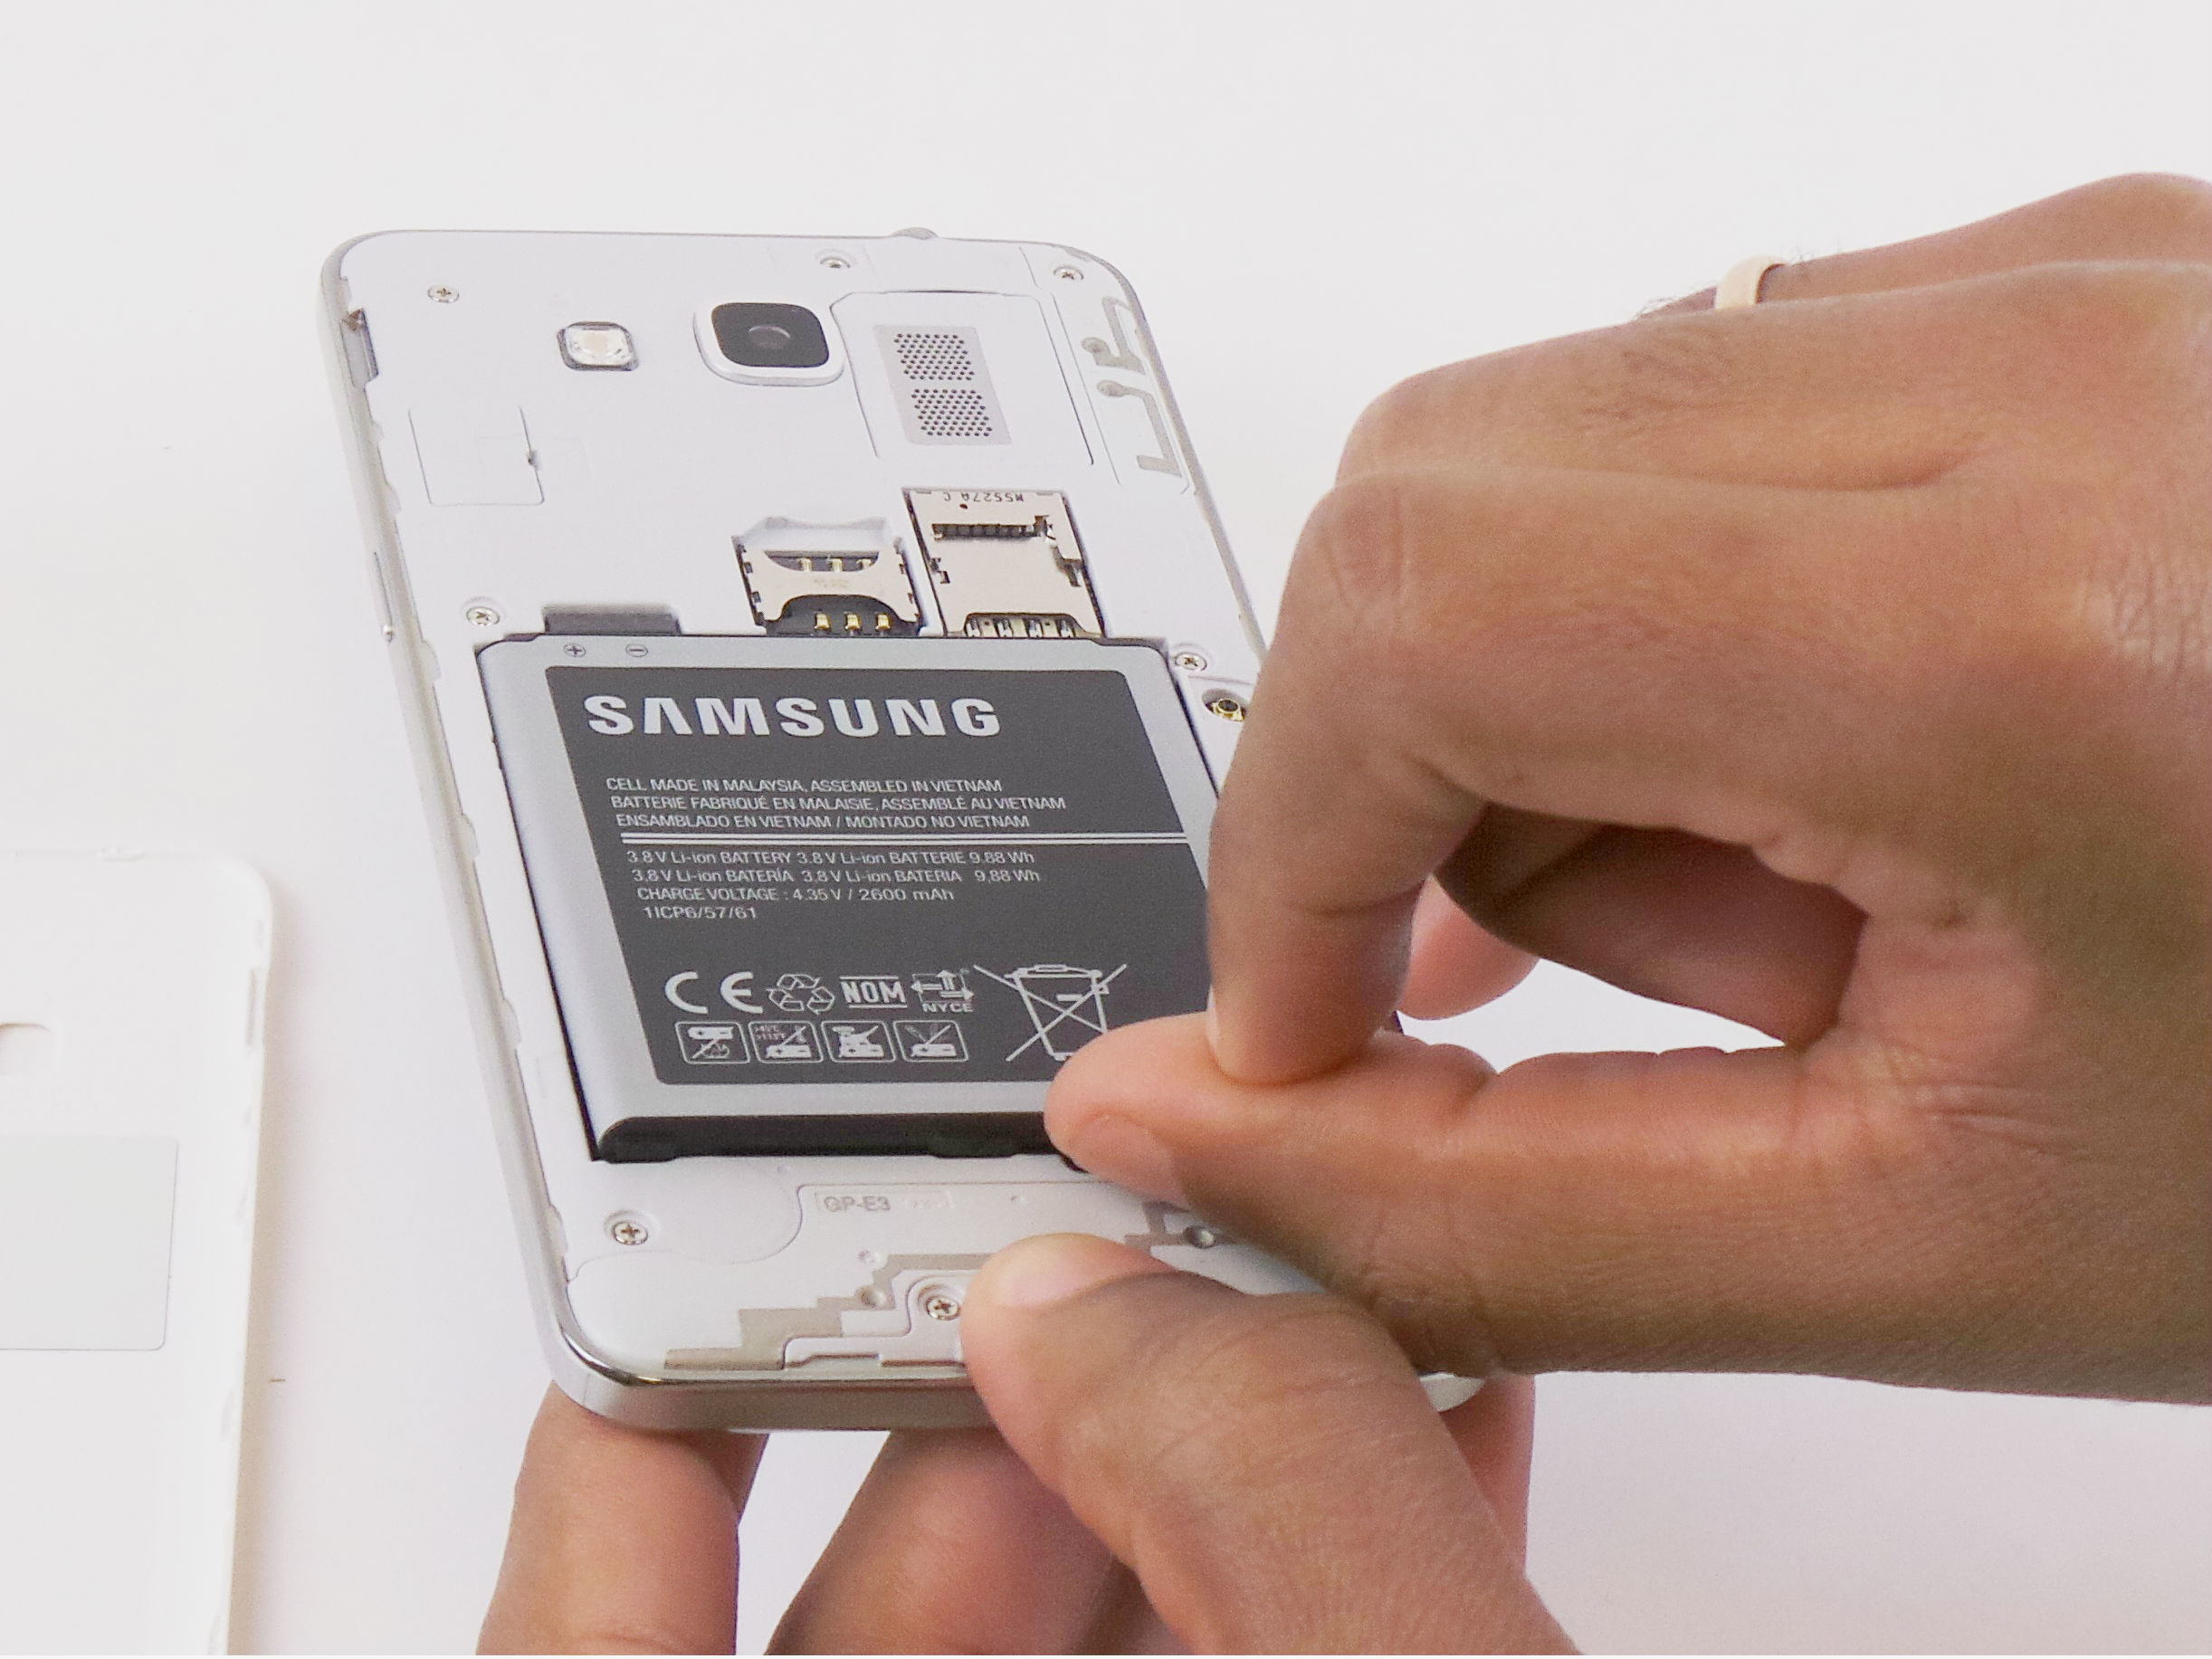 Samsung Galaxy Grand Prime - iFixit